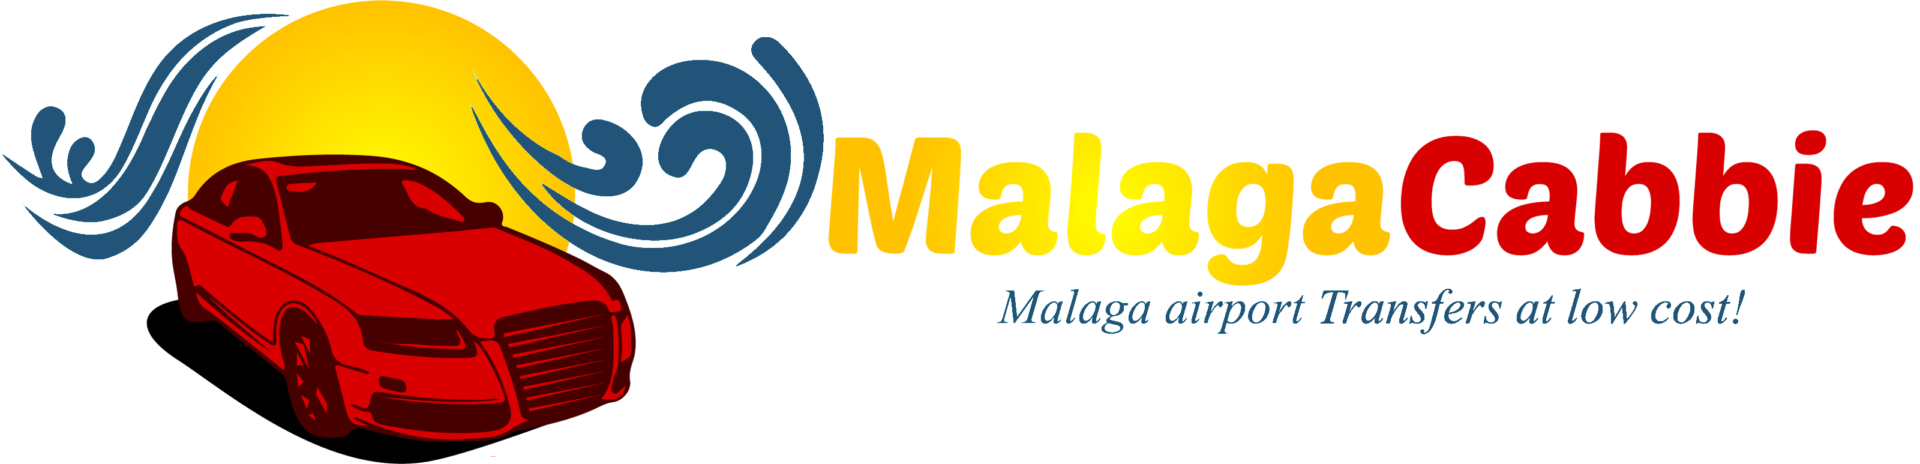 Malaga Cabbie | Malaga Cabbie Airport Transfers - Frequently Asked Questions - FAQ